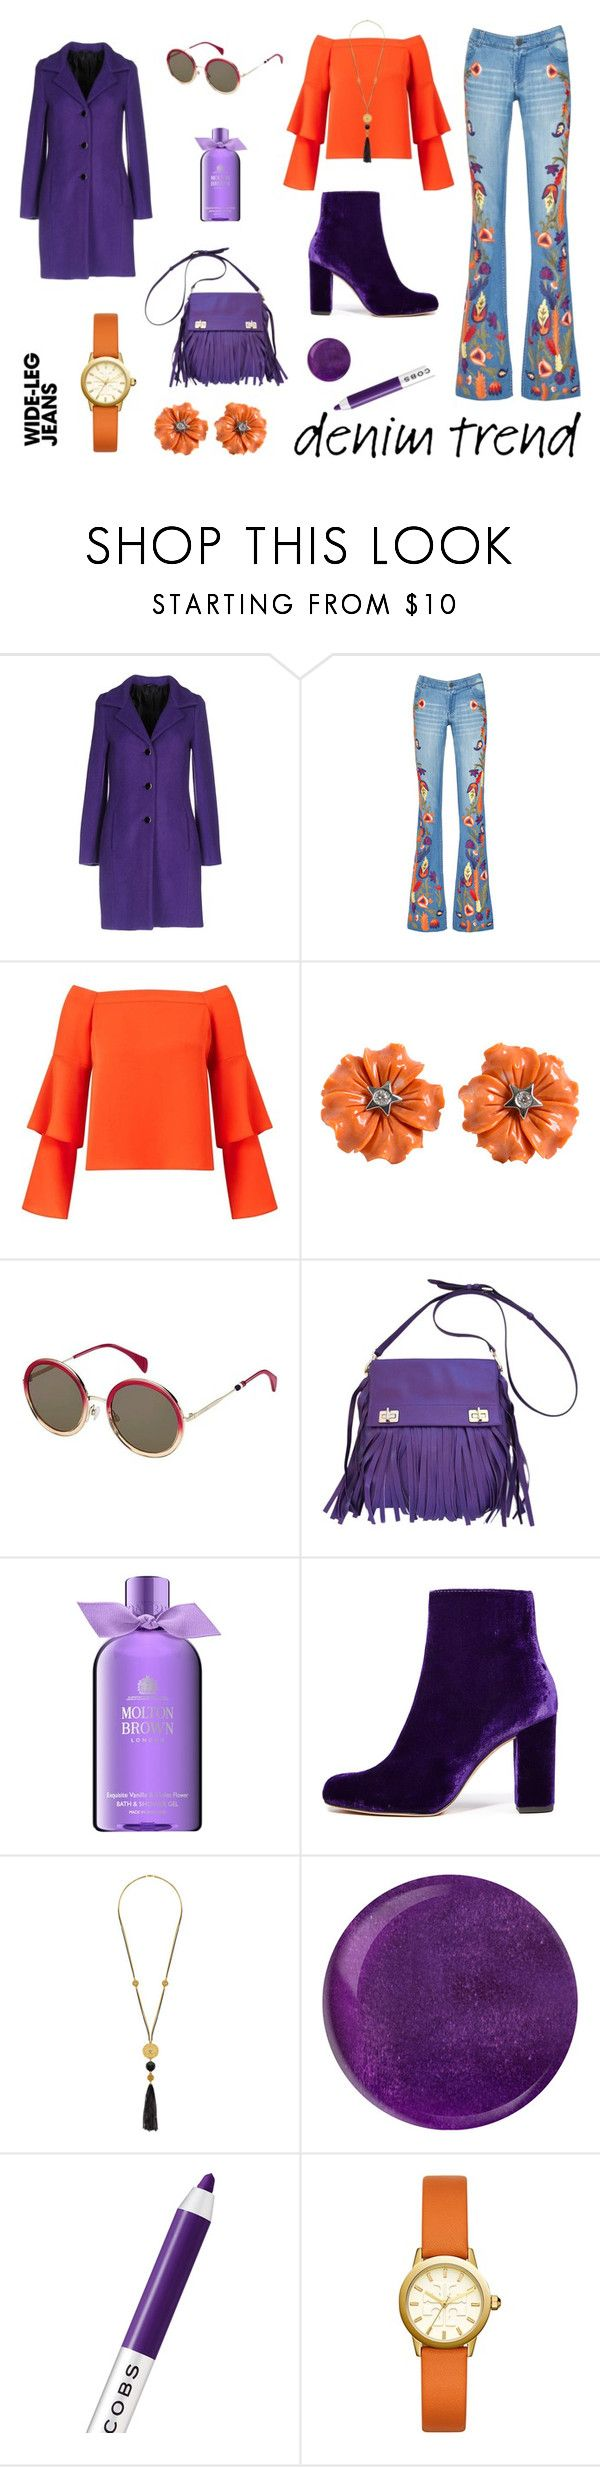 """""""Orange & Purple Wide-Leg Jeans"""" by tarparamu ❤ liked on Polyvore featuring Carla G., Alice + Olivia, Miss Selfridge, Tommy Hilfiger, Prada, Molton Brown, IRO, Marc Jacobs, Tory Burch and denimtrend"""